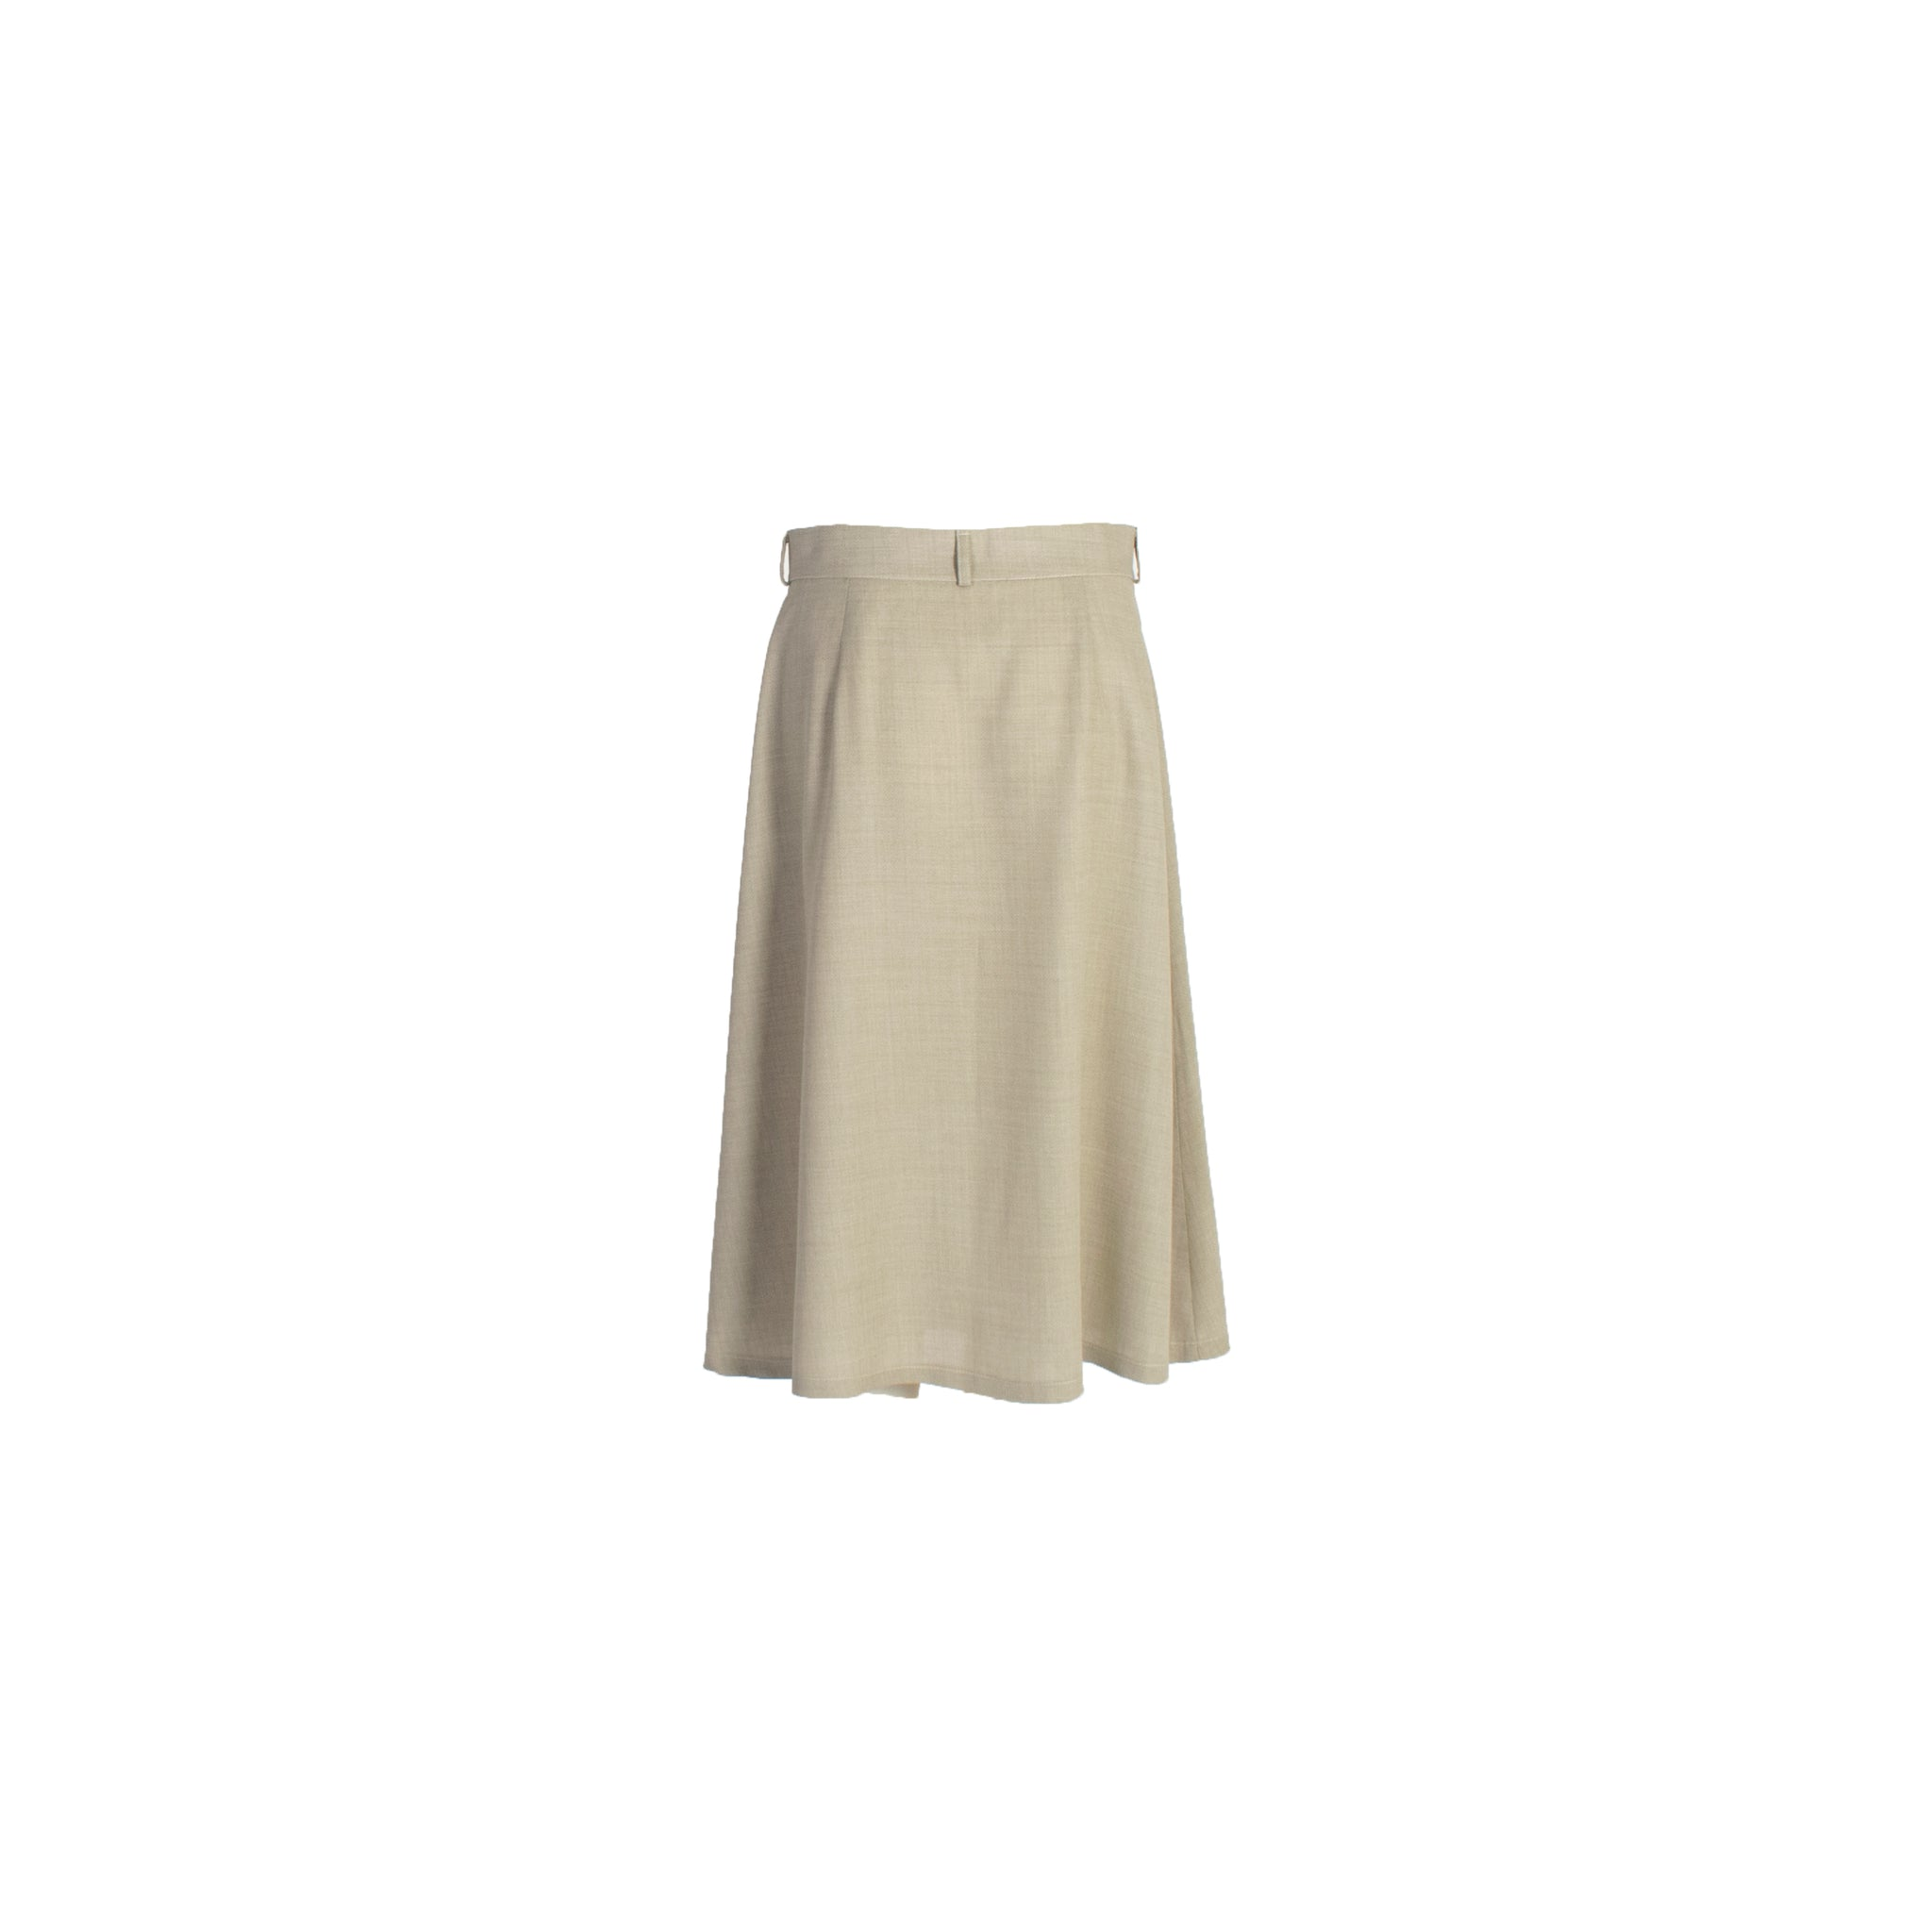 A-Line Wool Button Up Midi Skirt with Front Pockets Grey